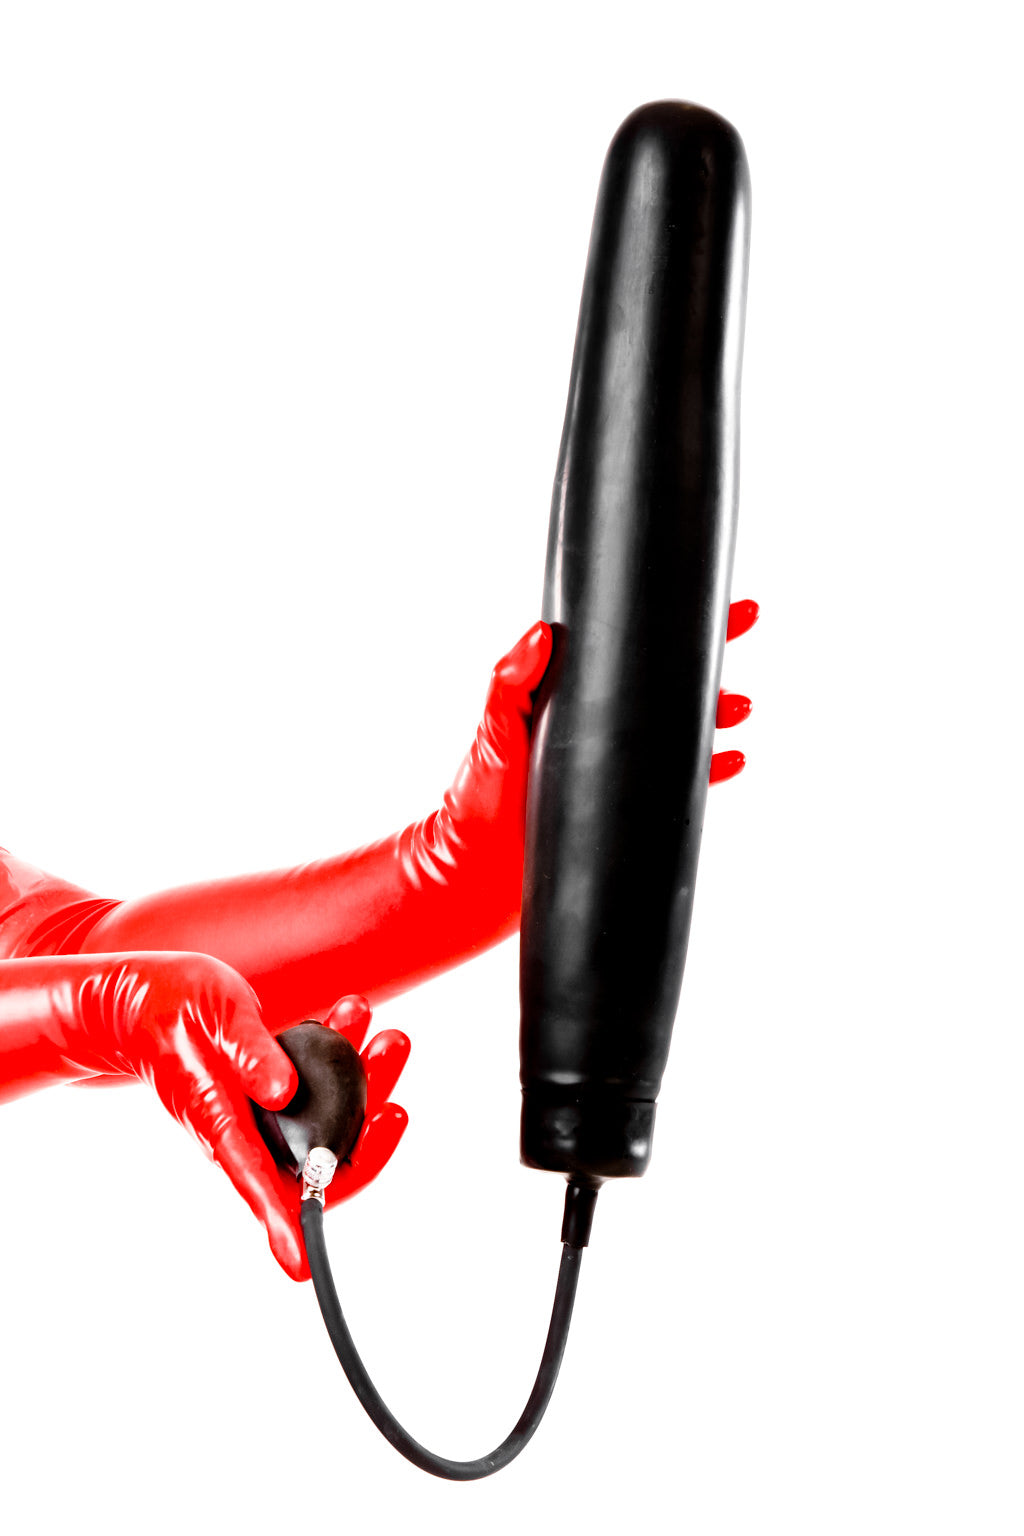 Red latex gloves holding an extra large exocet butt plug.